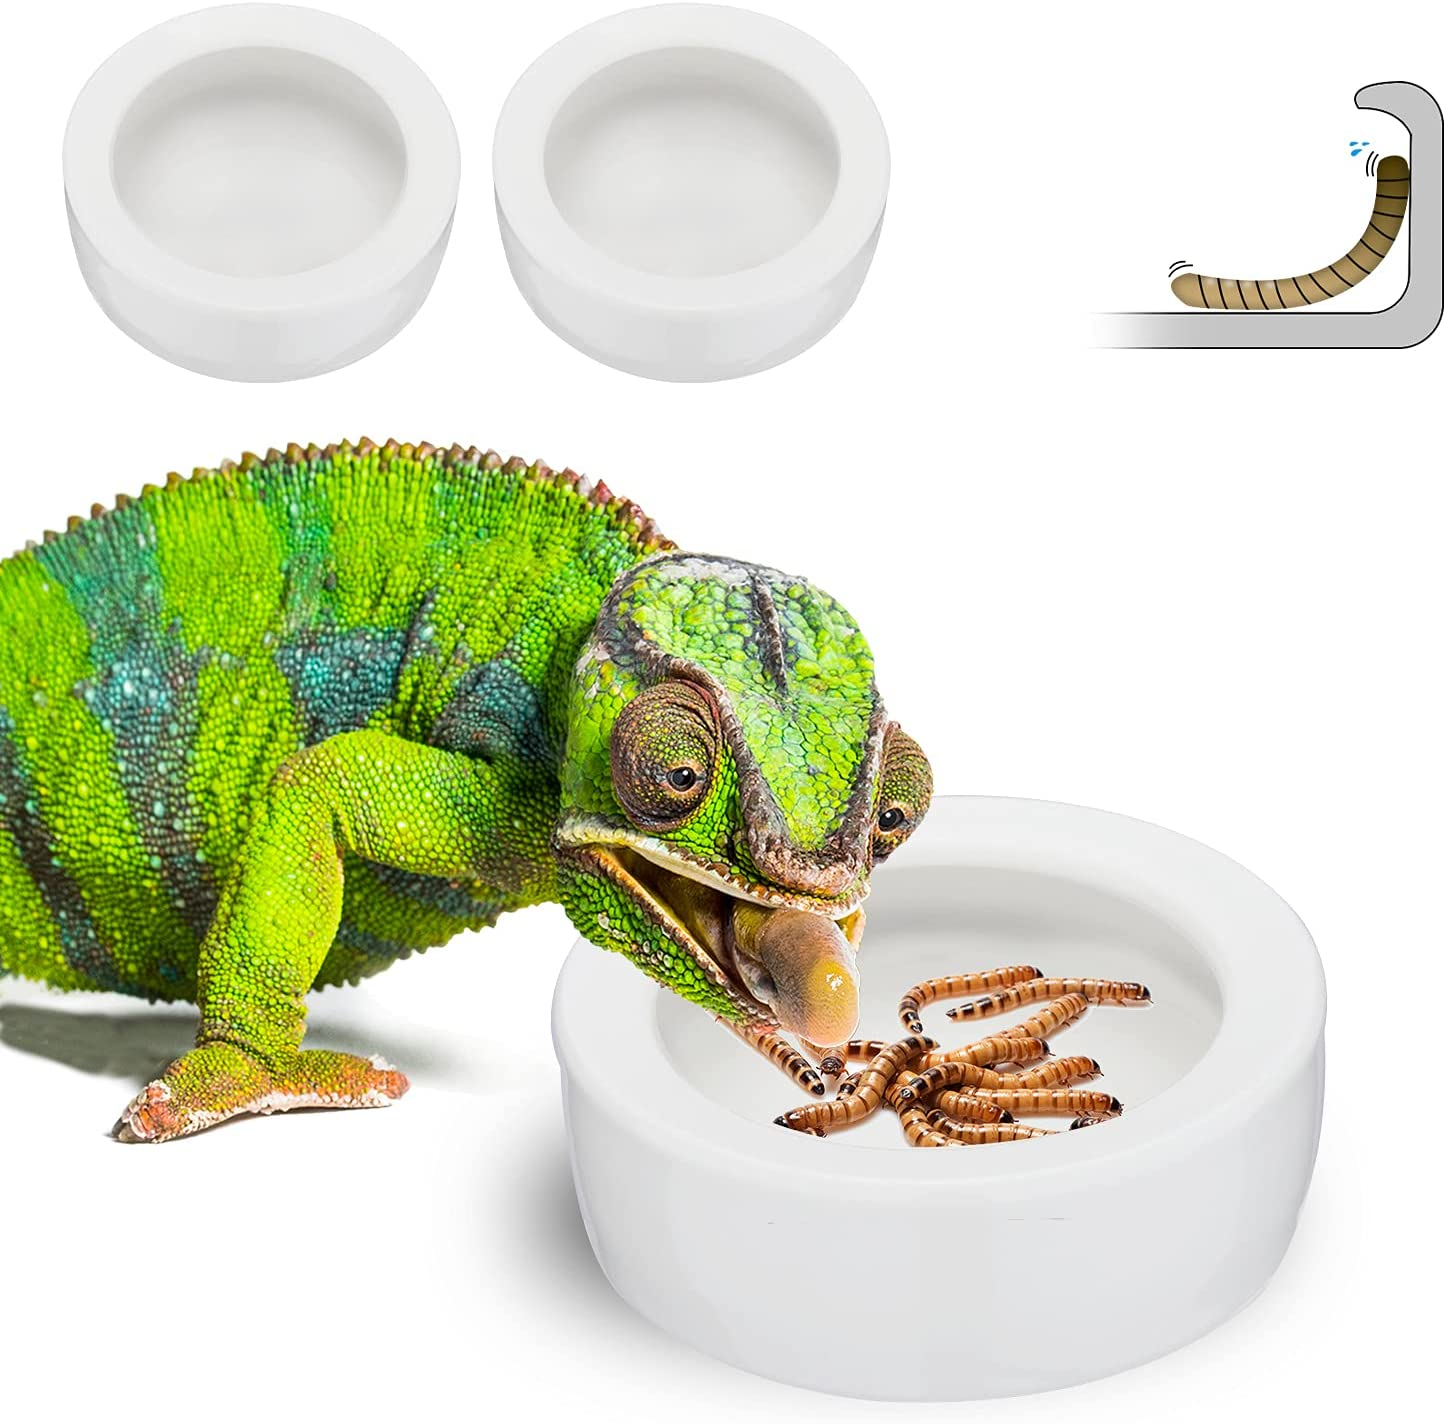 Nucookery Reptile Water Food Bowls,Worm Dish,Anti-Escape Feeder,Ceramic Pet Bowls,Worms Bowls for Lizard Bearded Dragon Gecko Chameleon,Calcium Powder Purees Dish,Small Circular(Pack of 2)